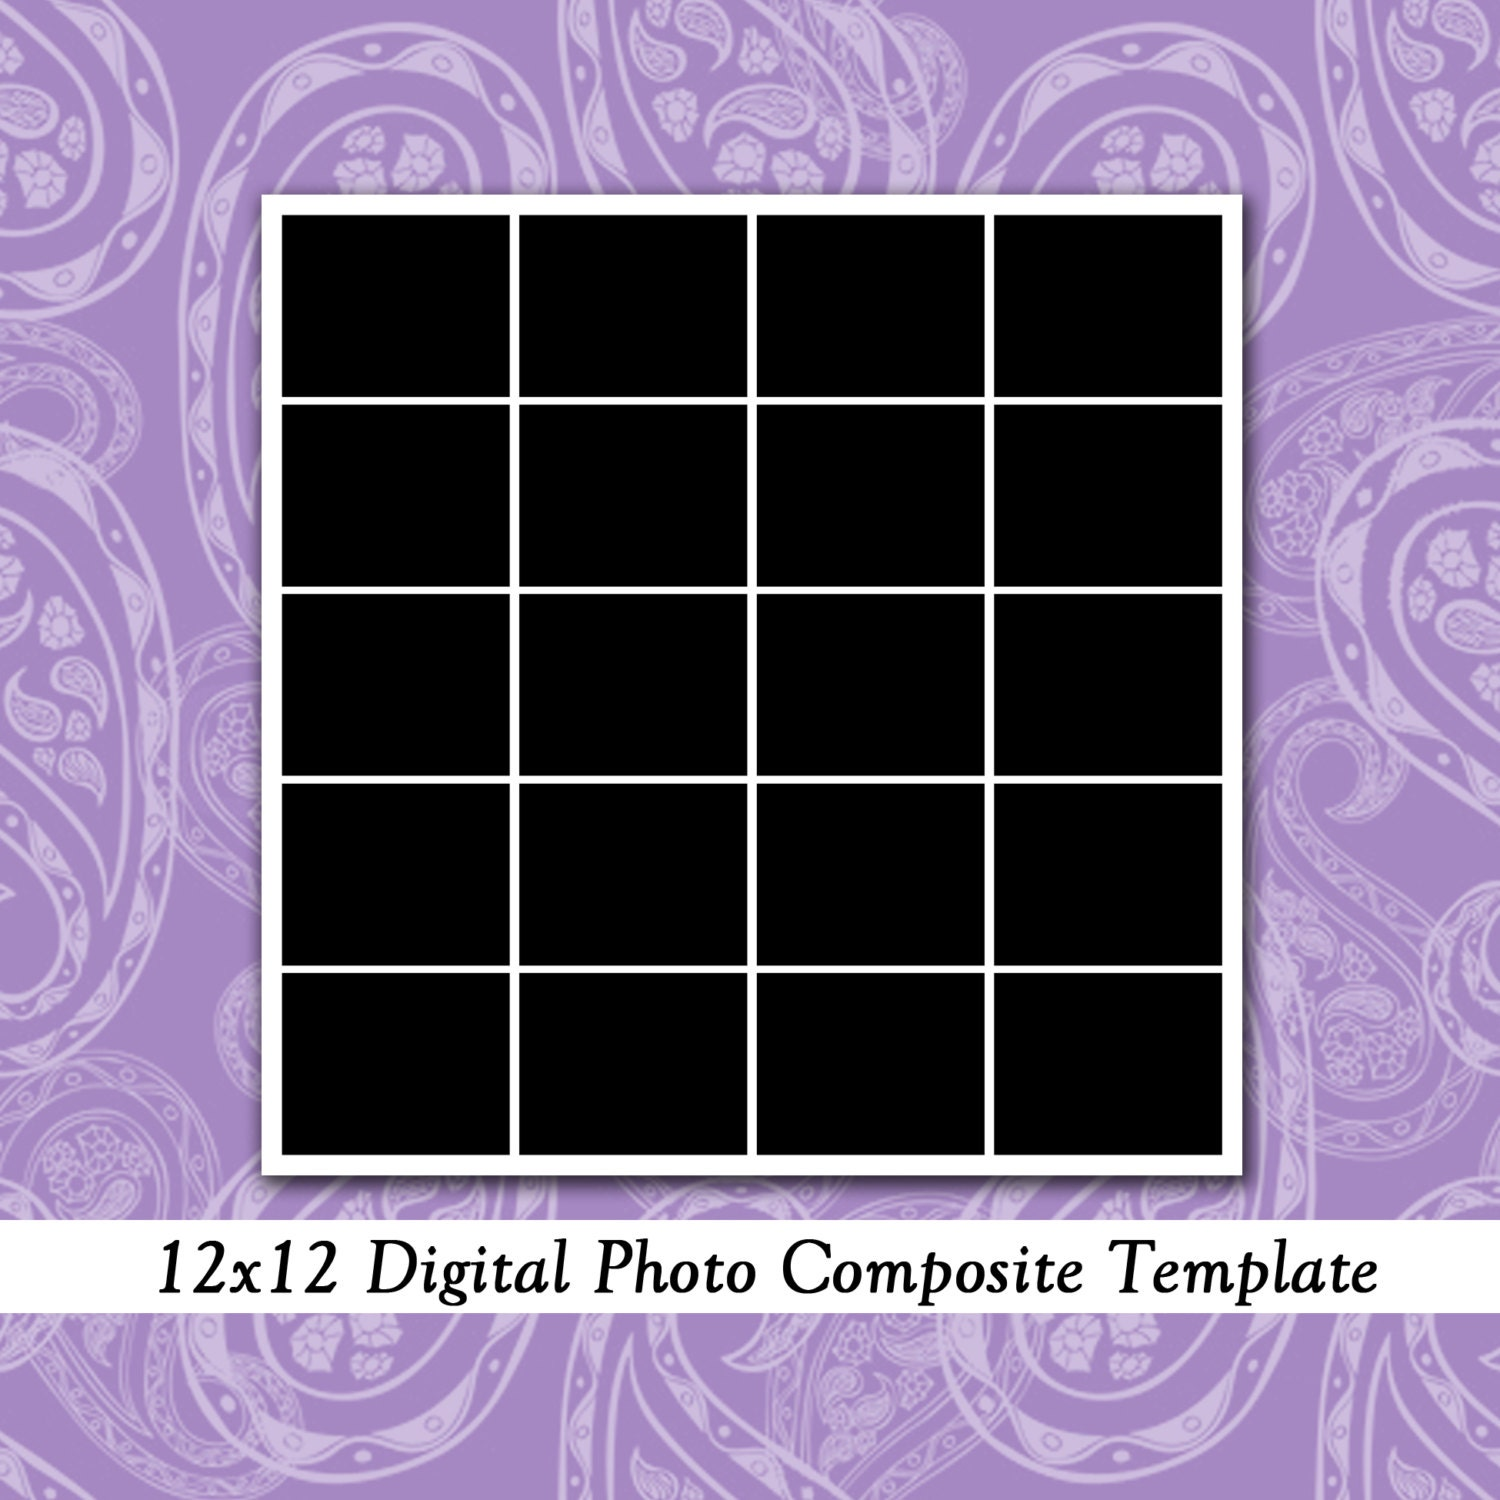 photo collage number templates - 12x12 photo template photo collage photography template